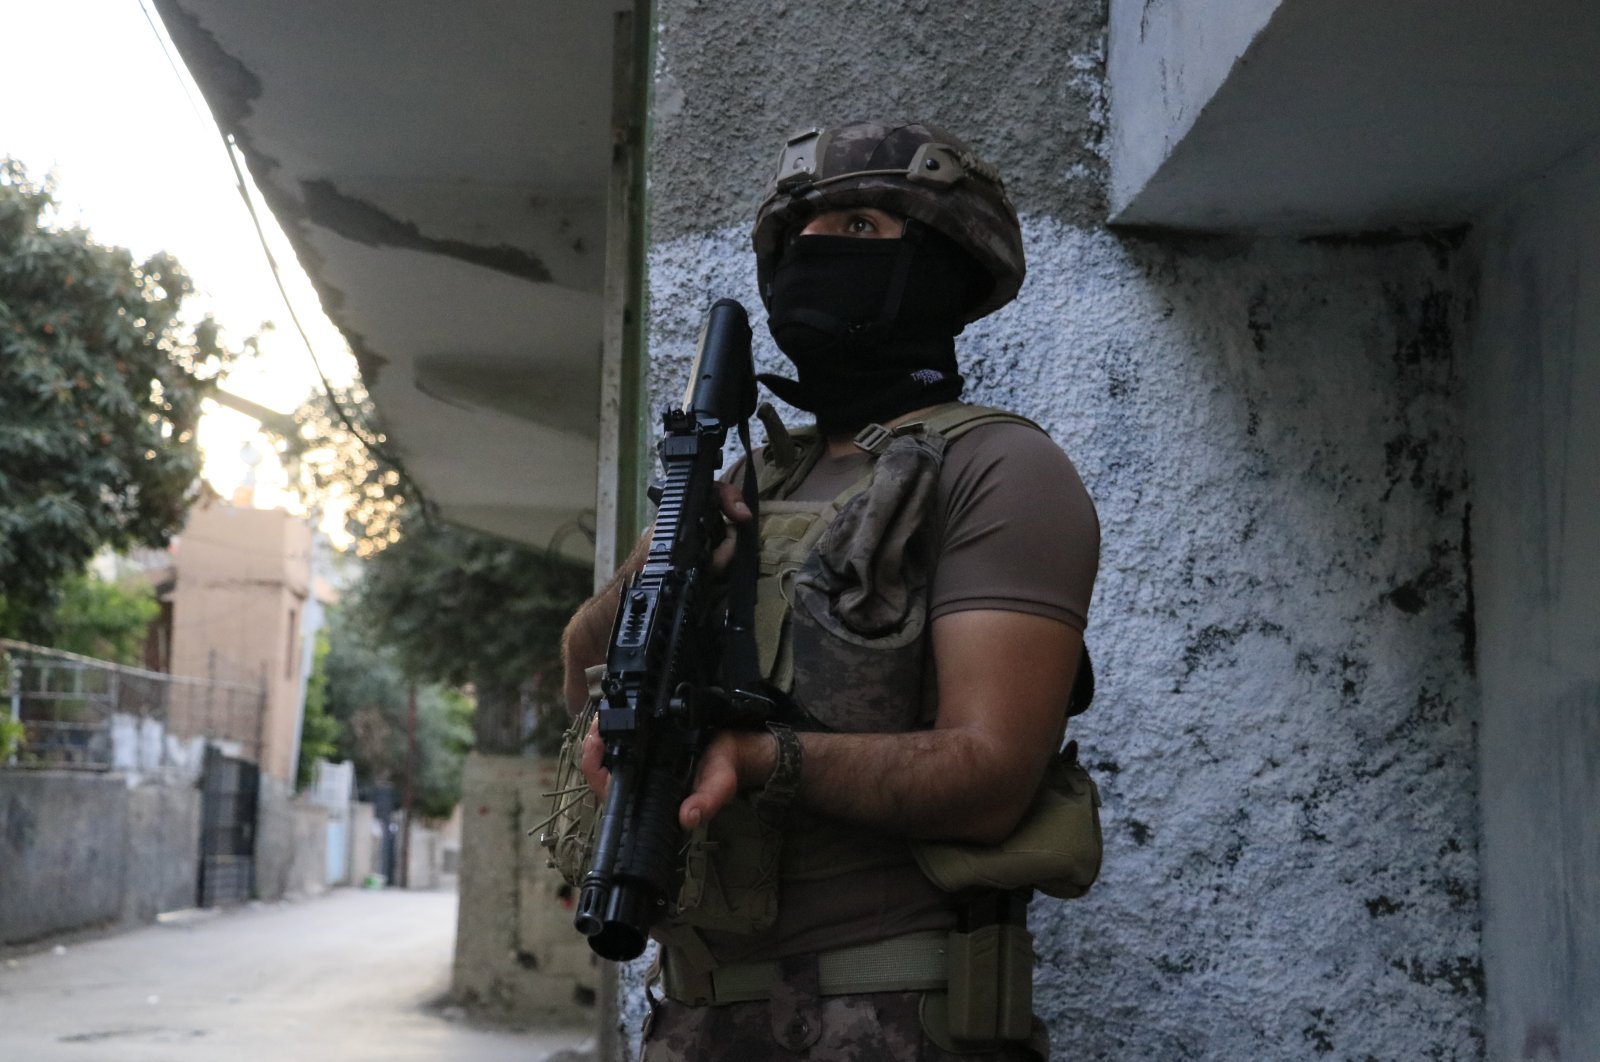 A special operations police stands in front of a building during raids in Turkey's southern Adana province, May 24, 2021. (IHA File Photo)